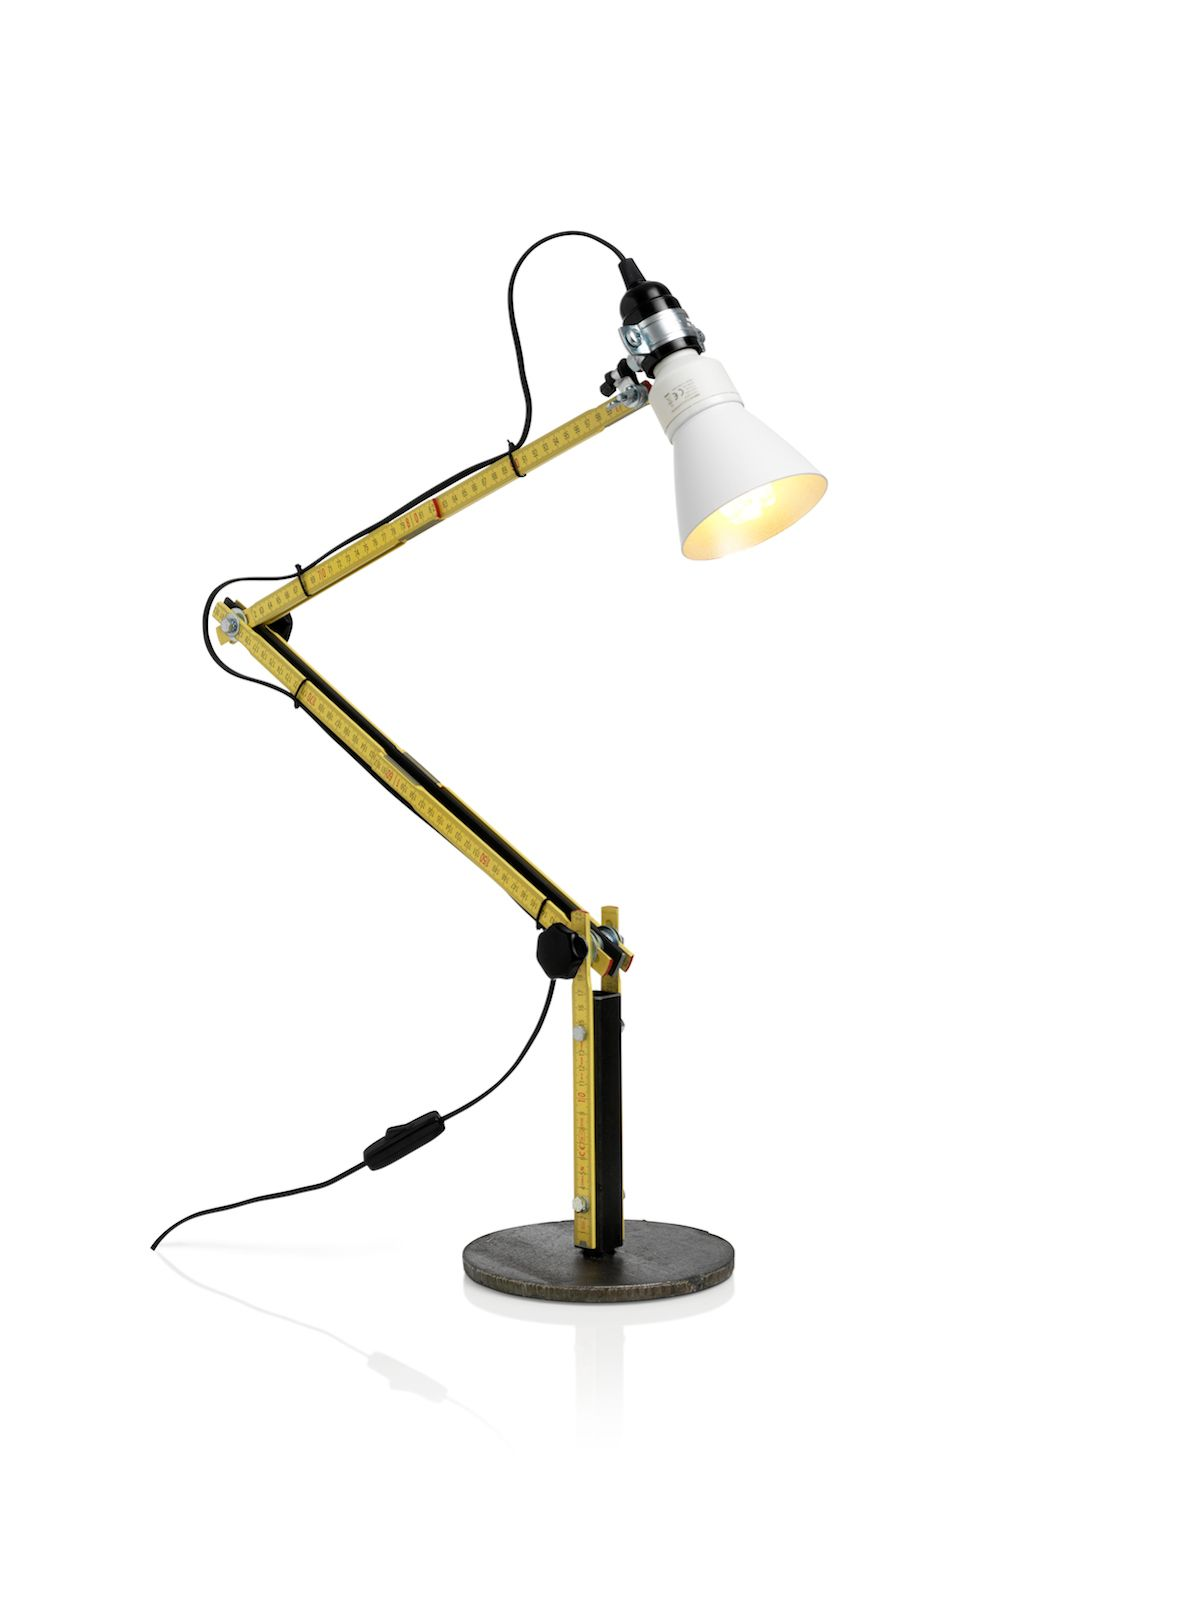 desk lighting solutions. Desk Lighting Solutions. Tools Table Light Is A Ready-made Objects, An Solutions 8